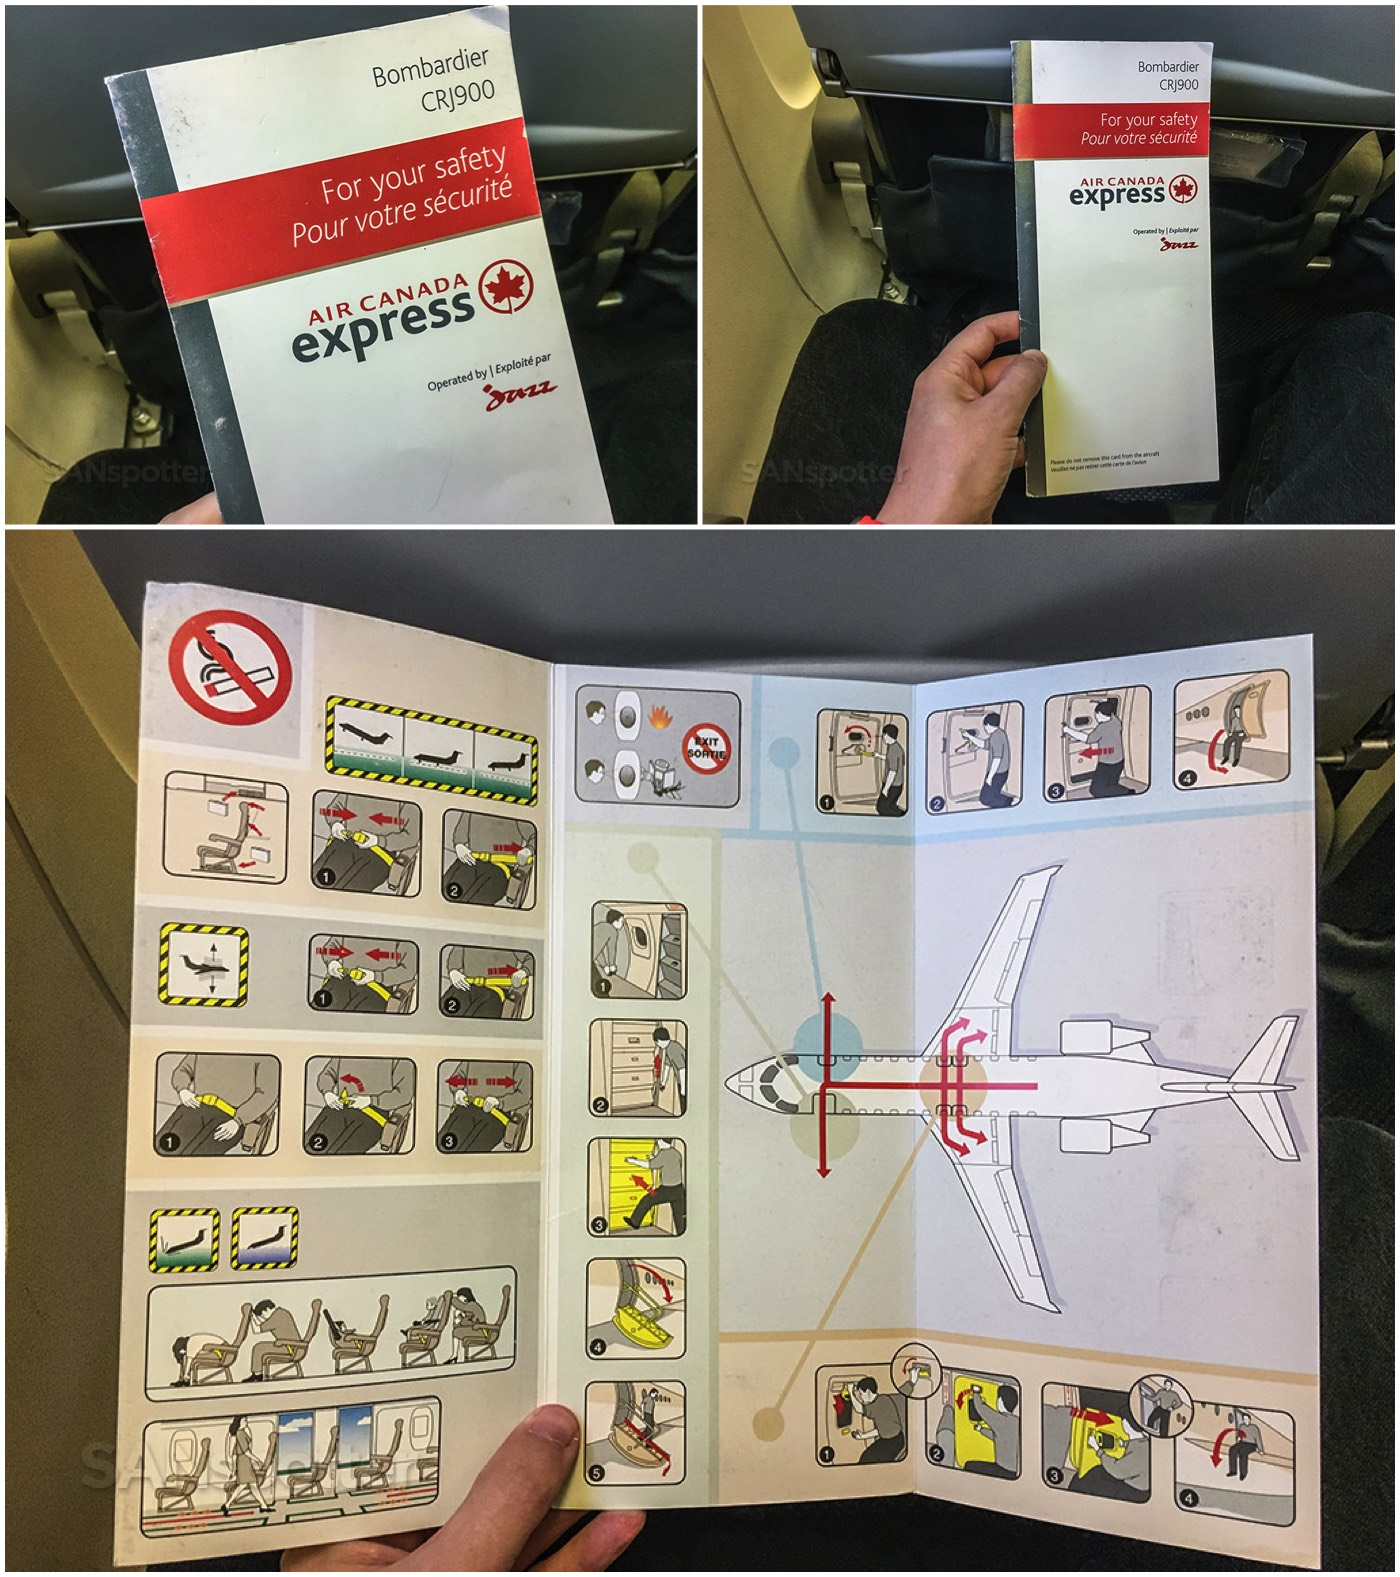 Air Canada express CRJ-900 safety card